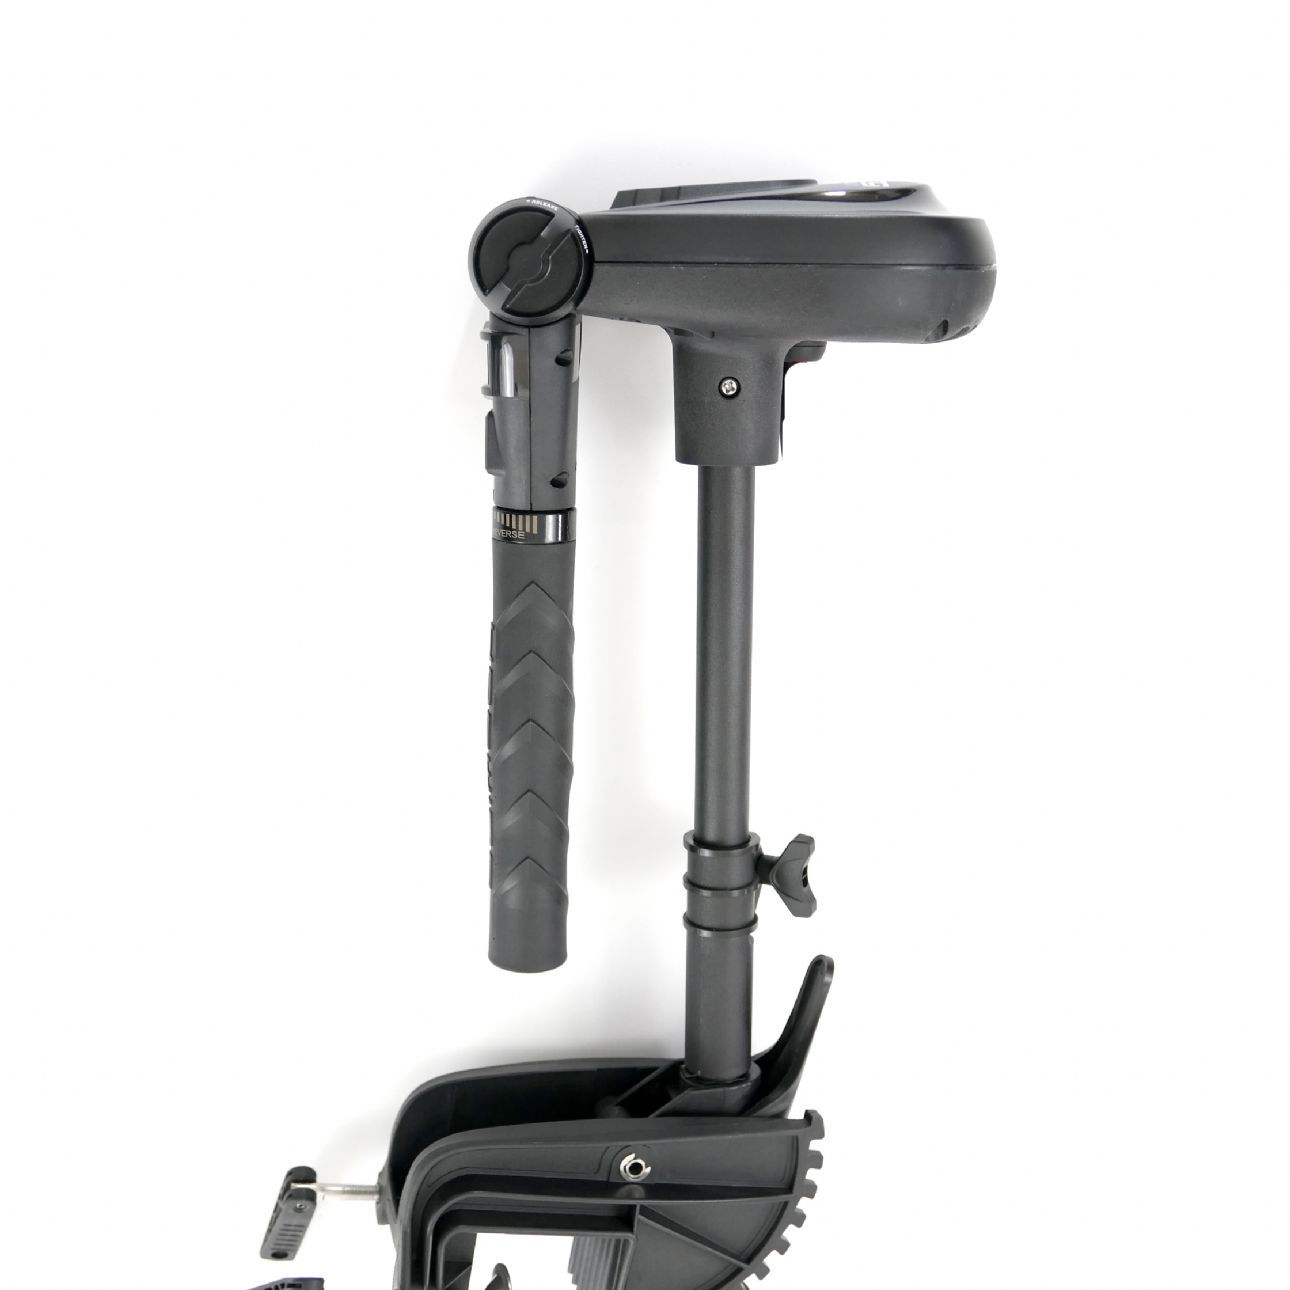 HASWING Protruar 5HP Electric Outboard 24V with Digimax Controller -